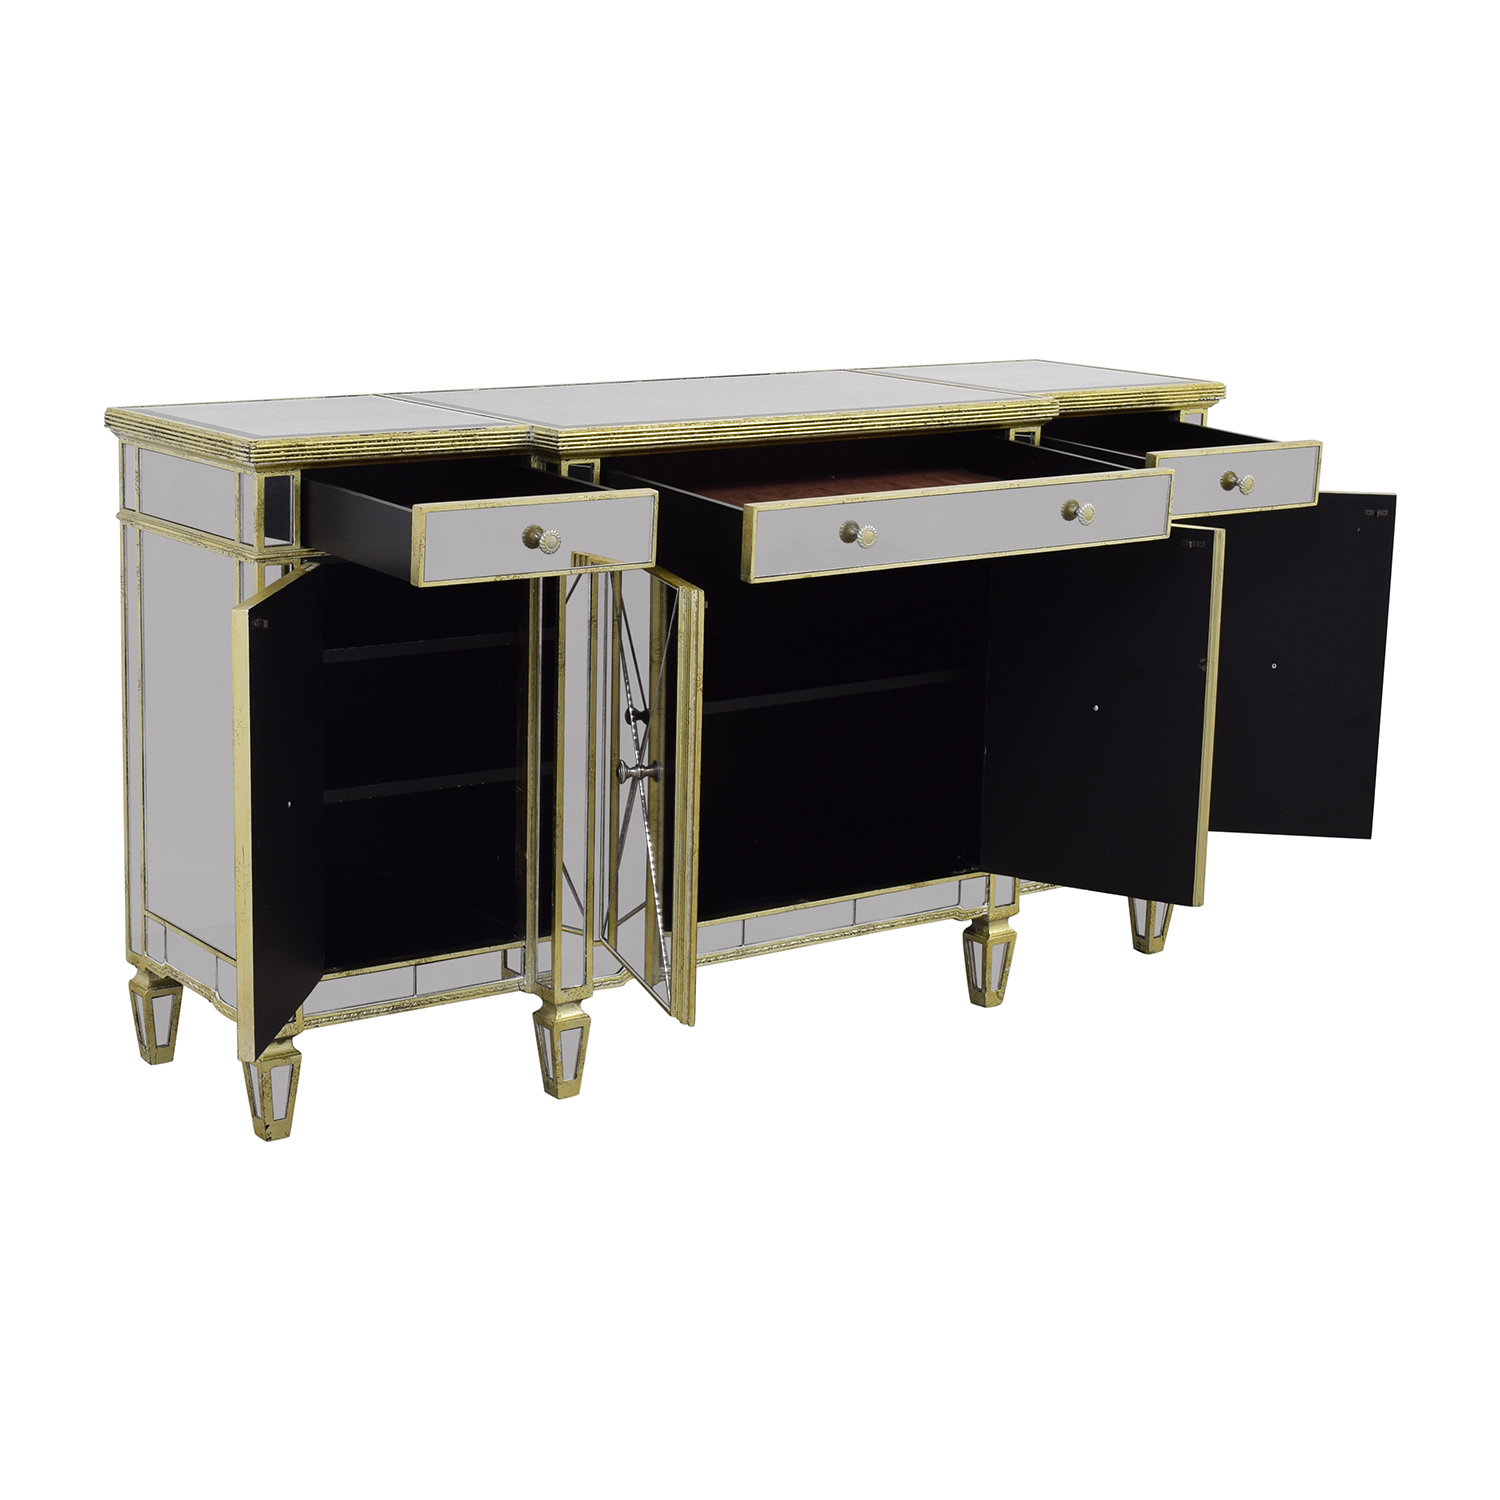 Horchow Mirrored Furniture | homeslook.info